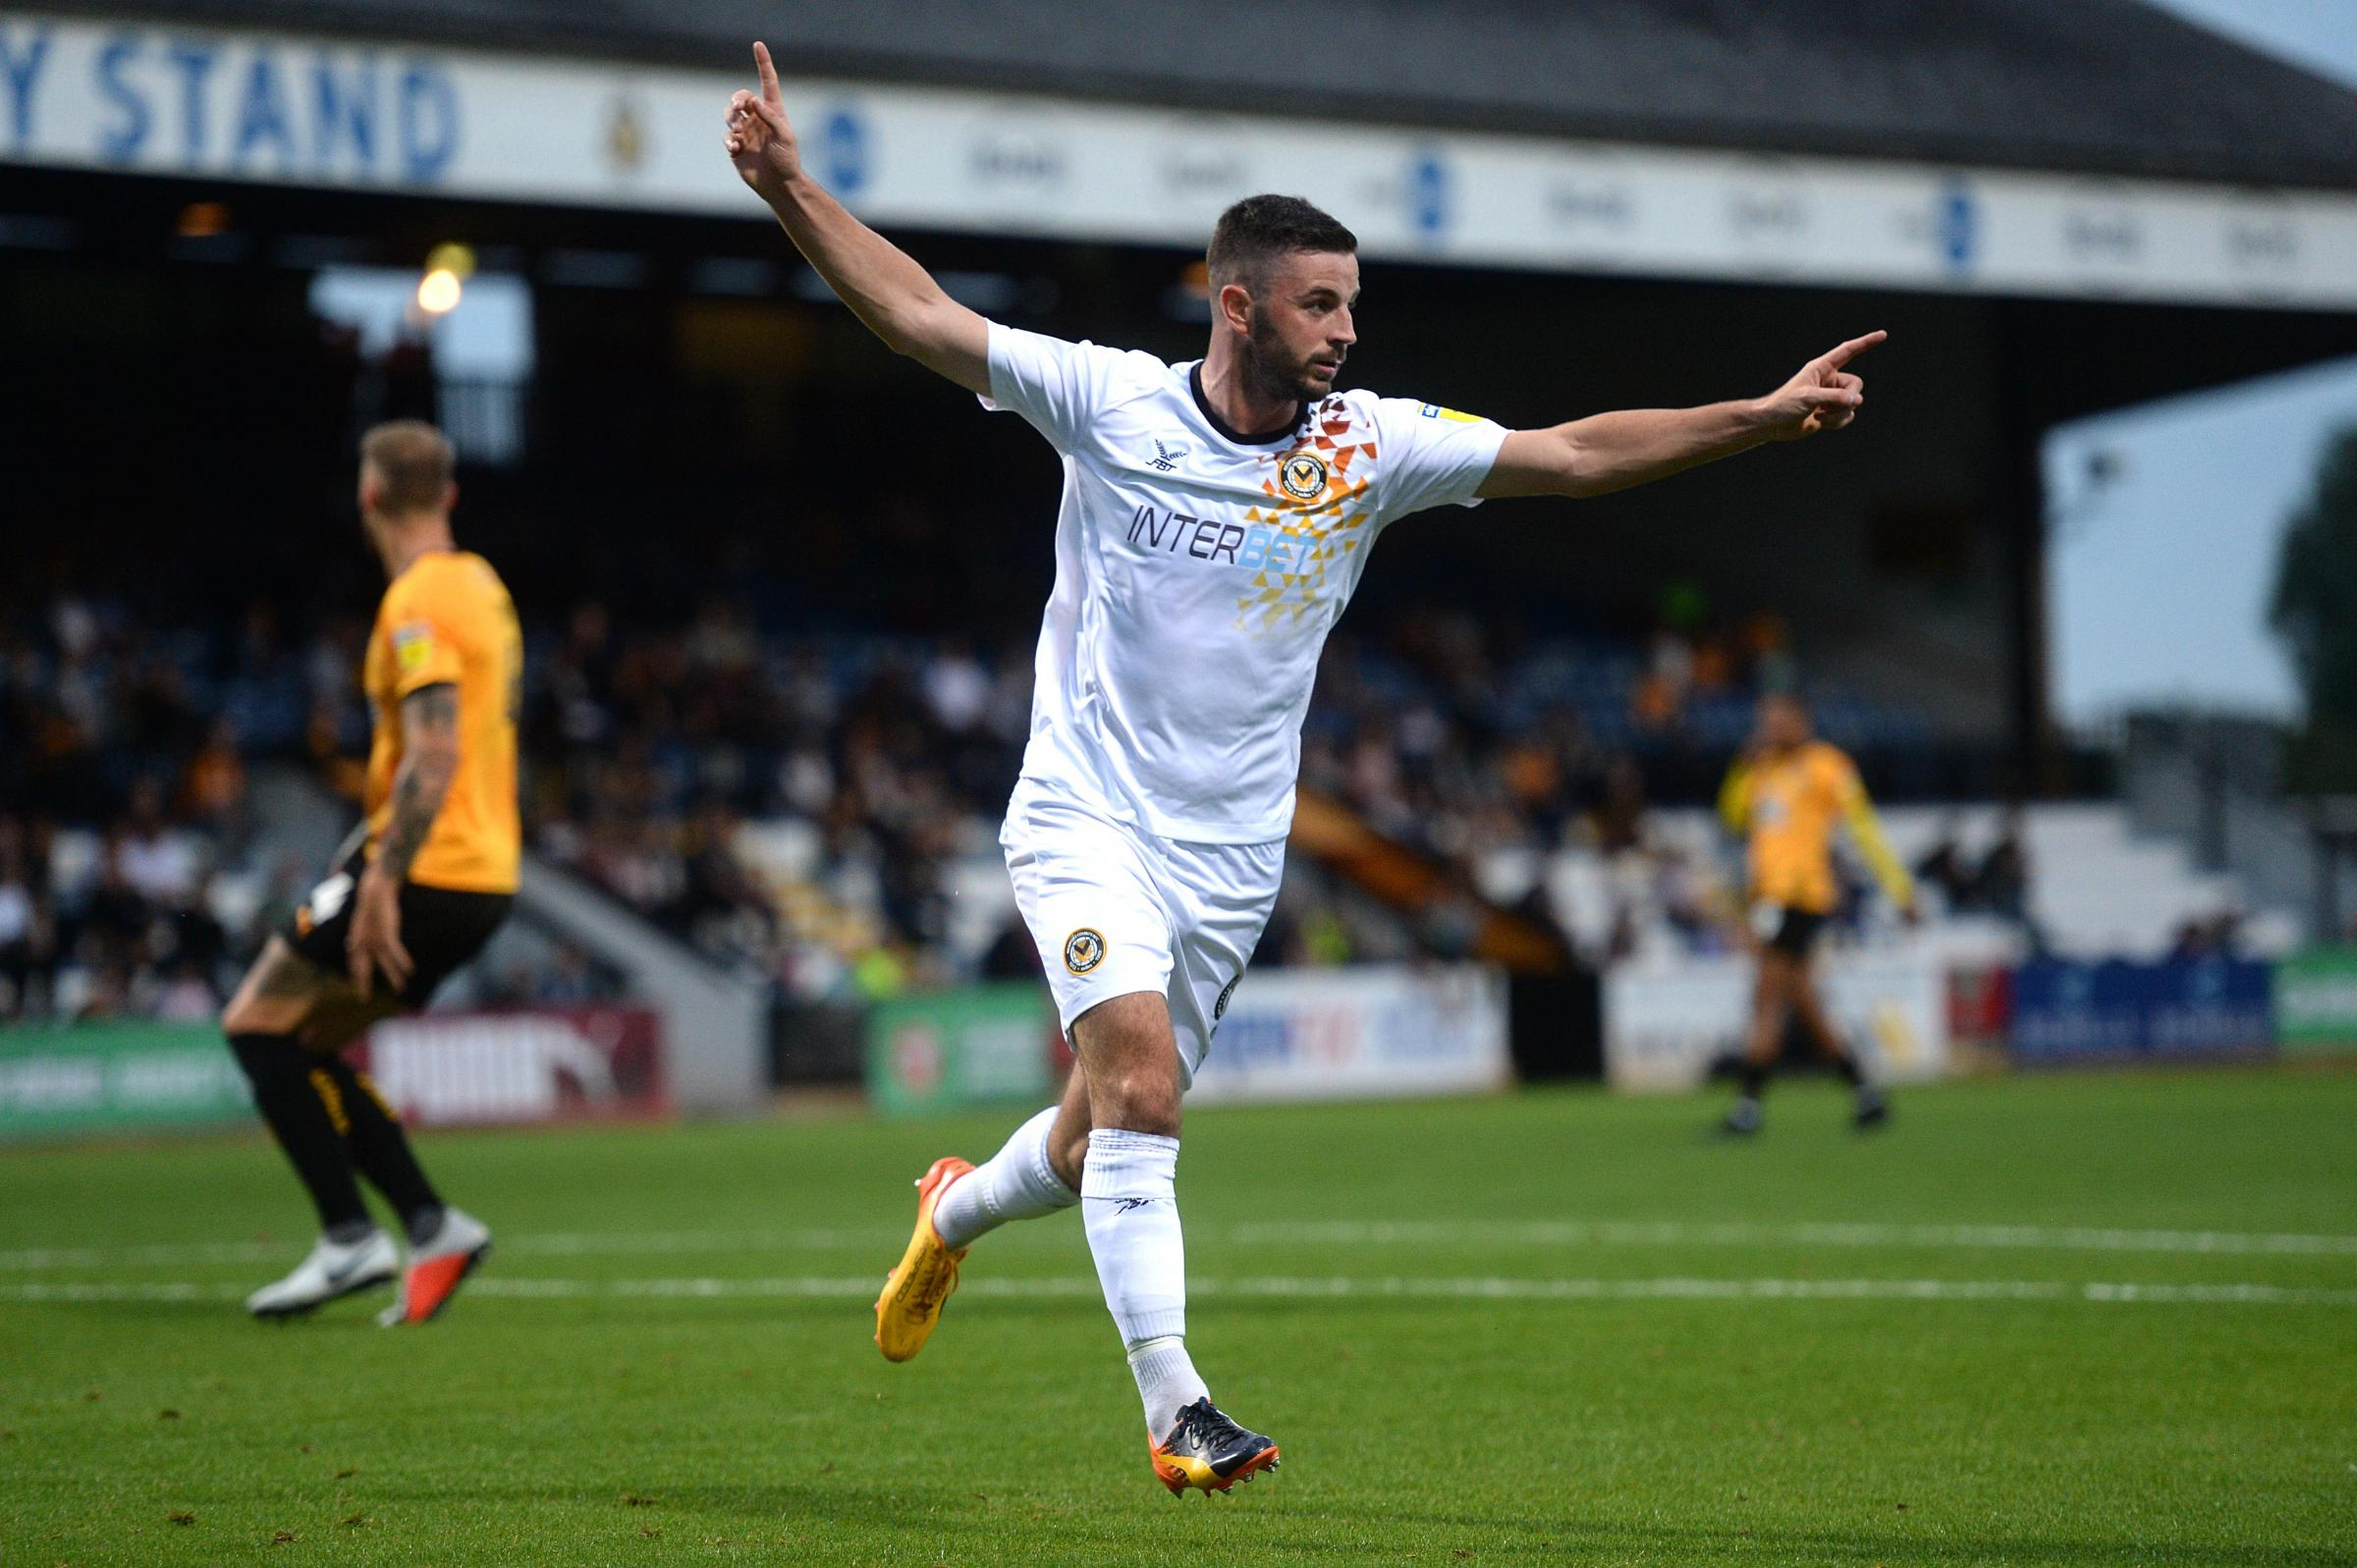 BRACE: Newport County striker Padraig Amond scored twice in the Carabao Cup first-round win at Cambridge United